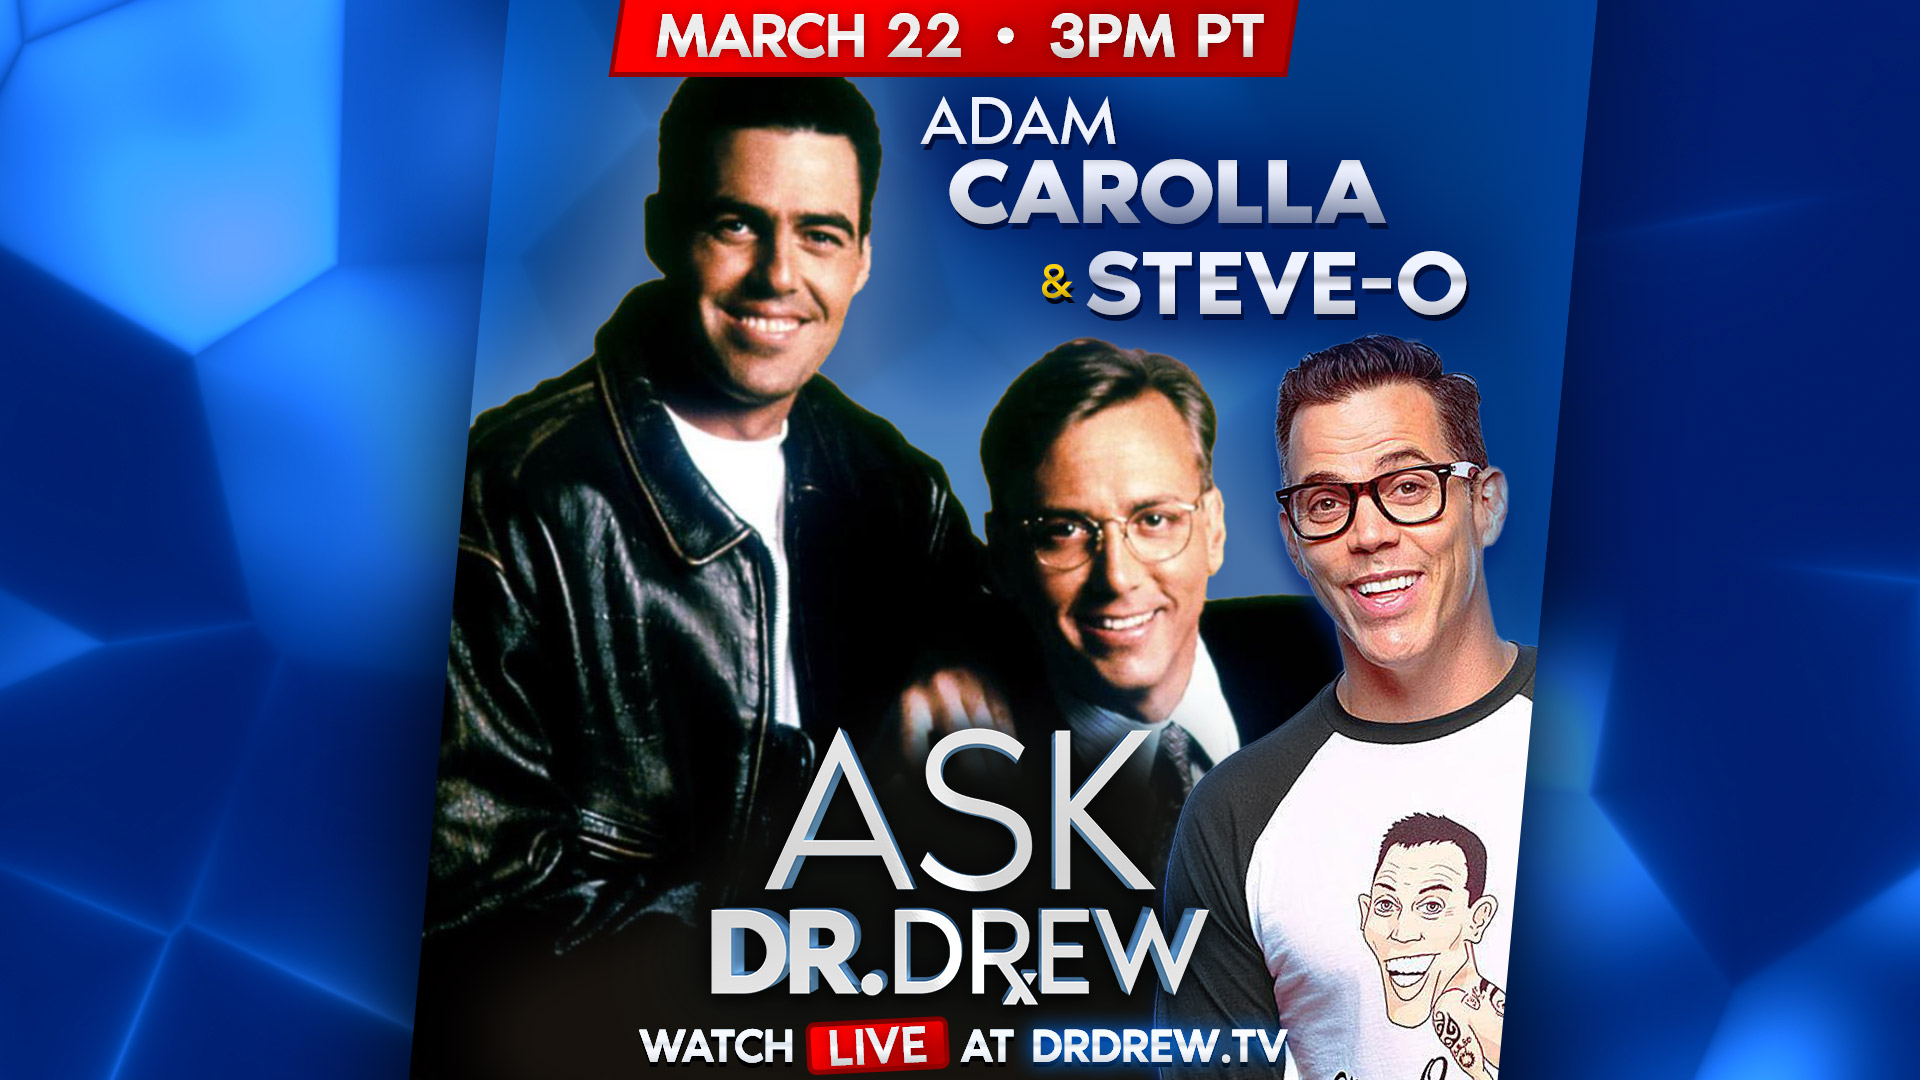 March 22 at 3pm PT: Ask Dr. Drew with Adam Carolla & Steve O